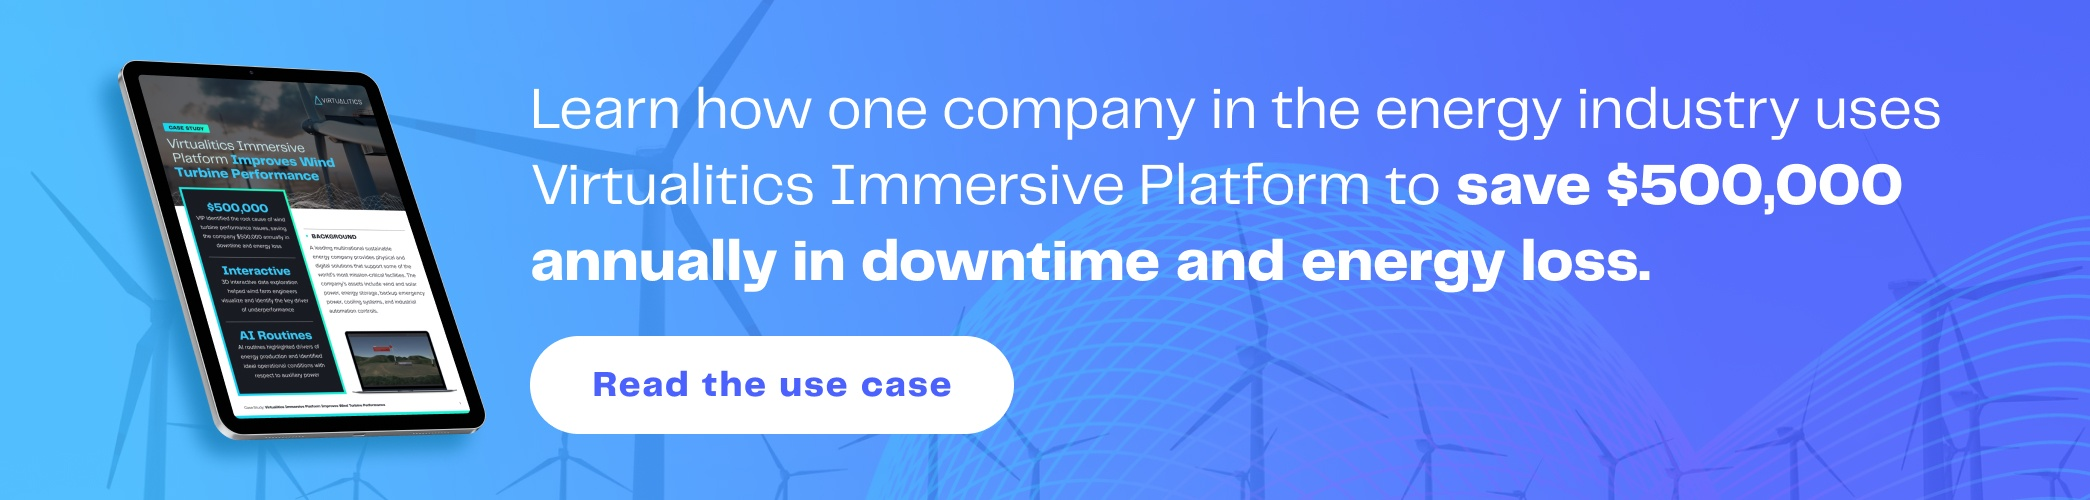 click to download the use case